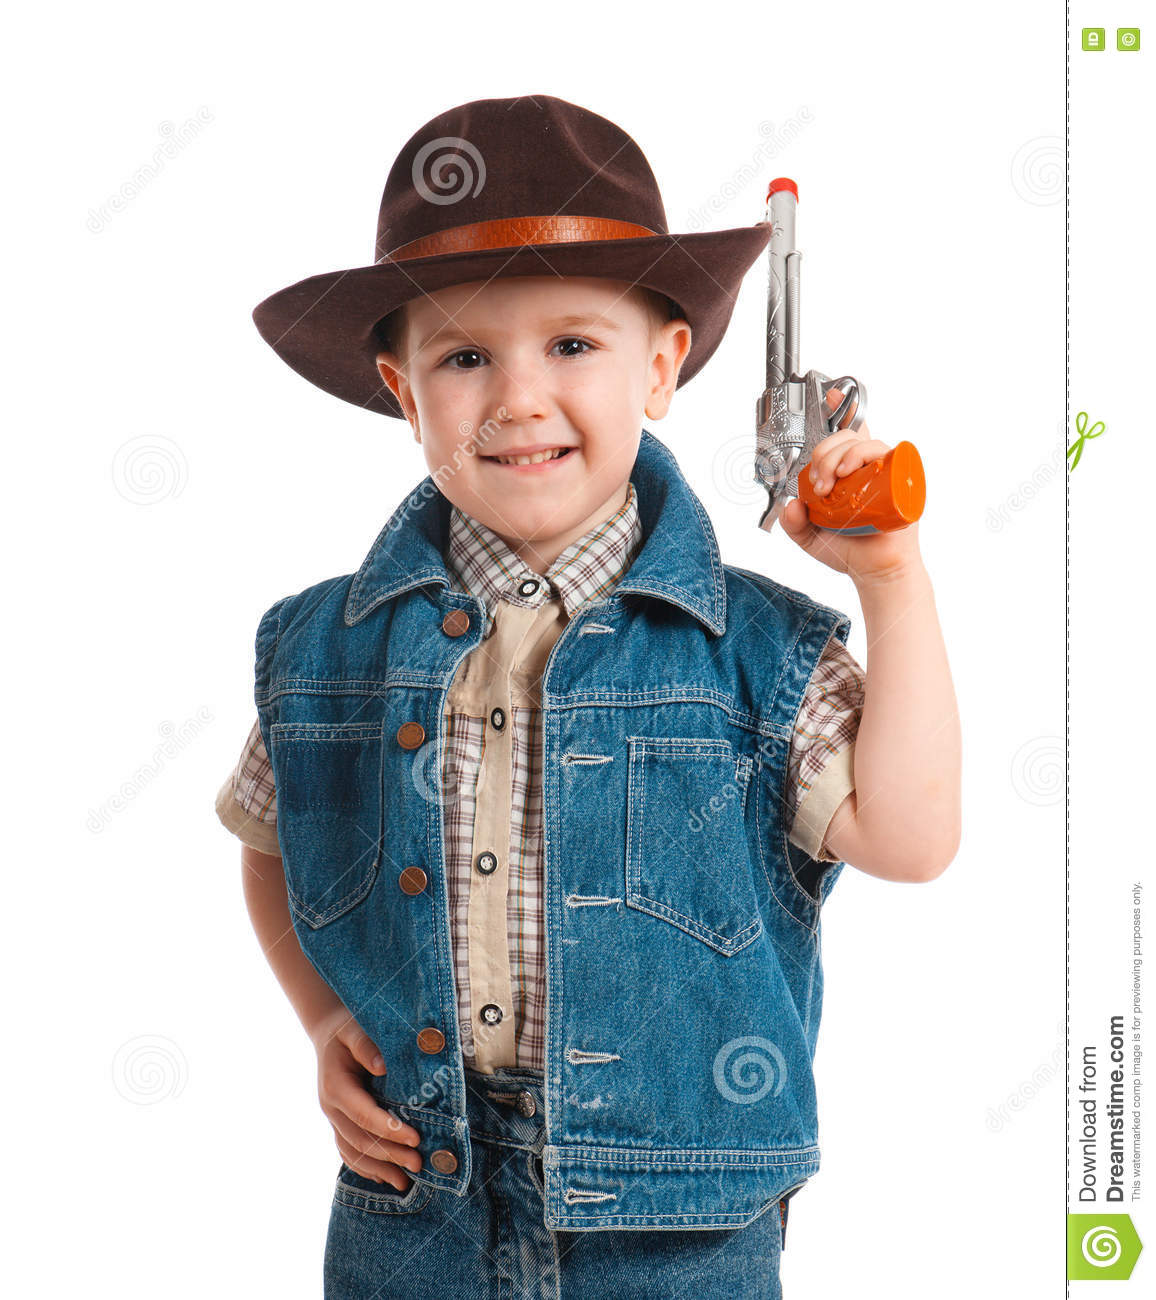 b9fe41adc49c2 Little Boy Wearing A Cowboy Hat Stock Photo - Image of little